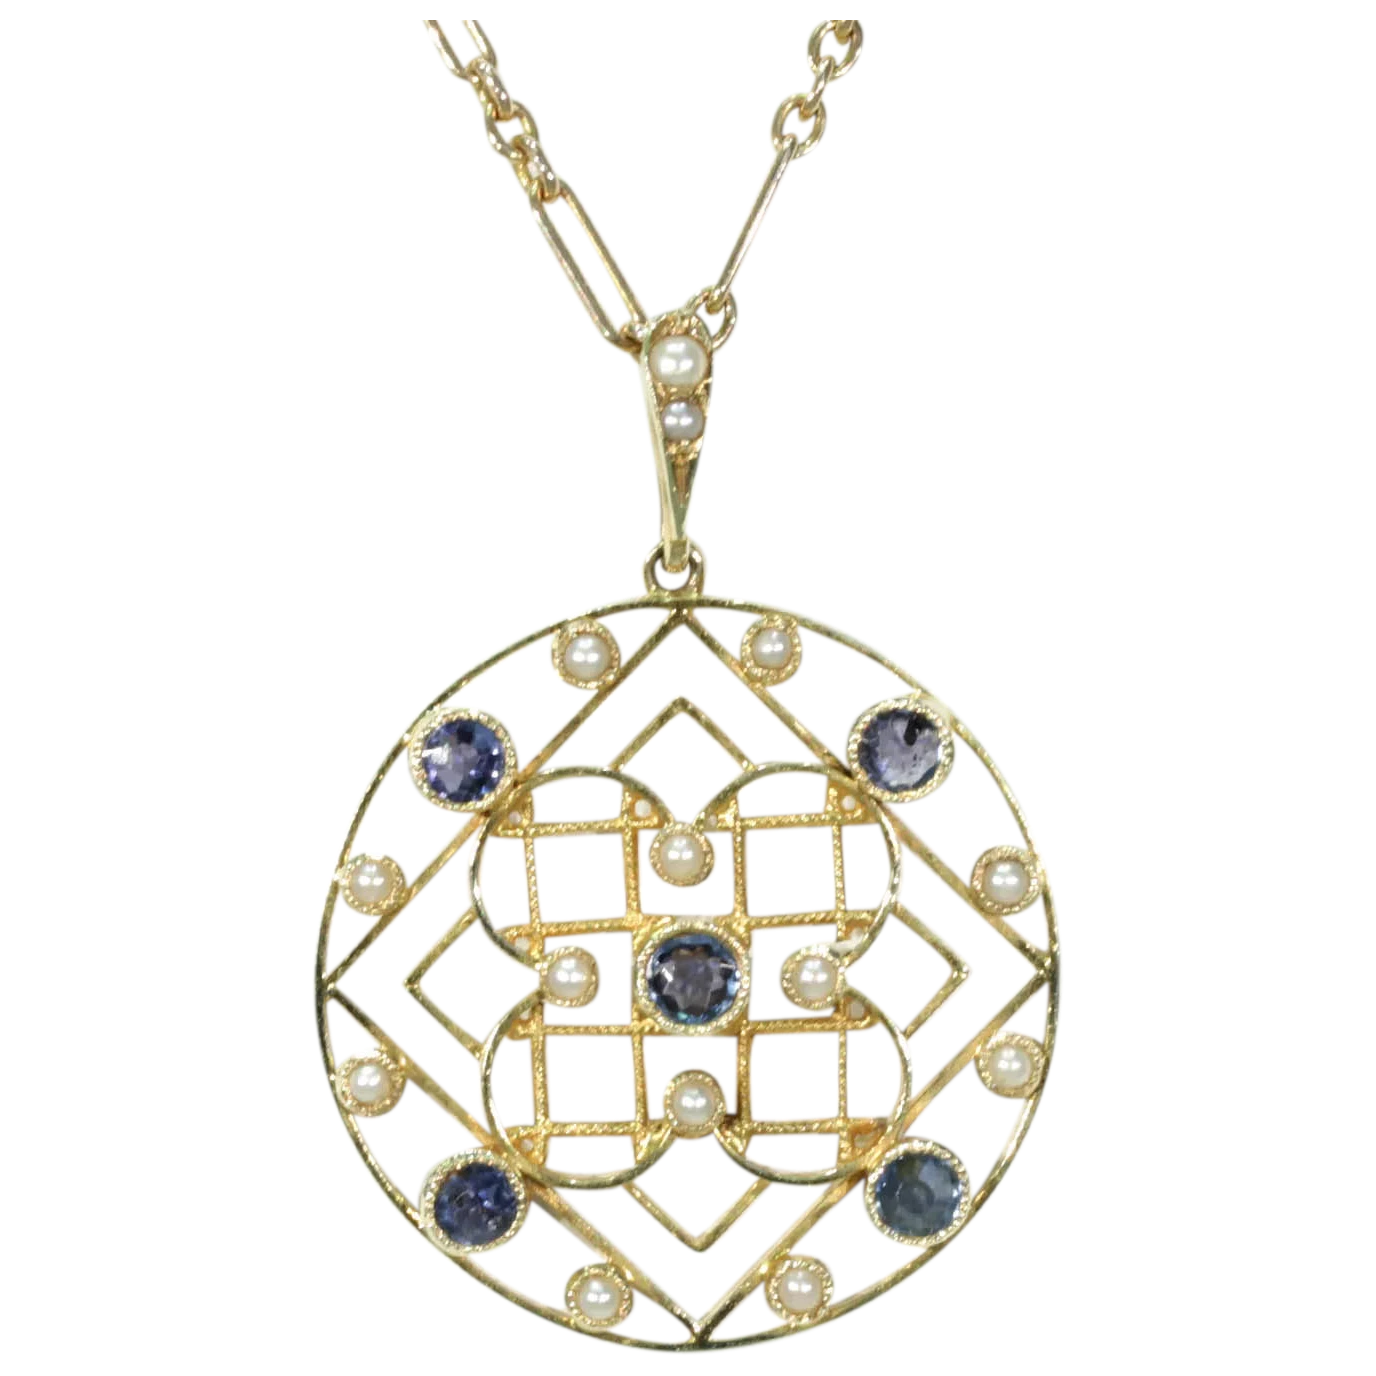 Edwardian Sapphire Pearl Pendant Necklace 15k Gold